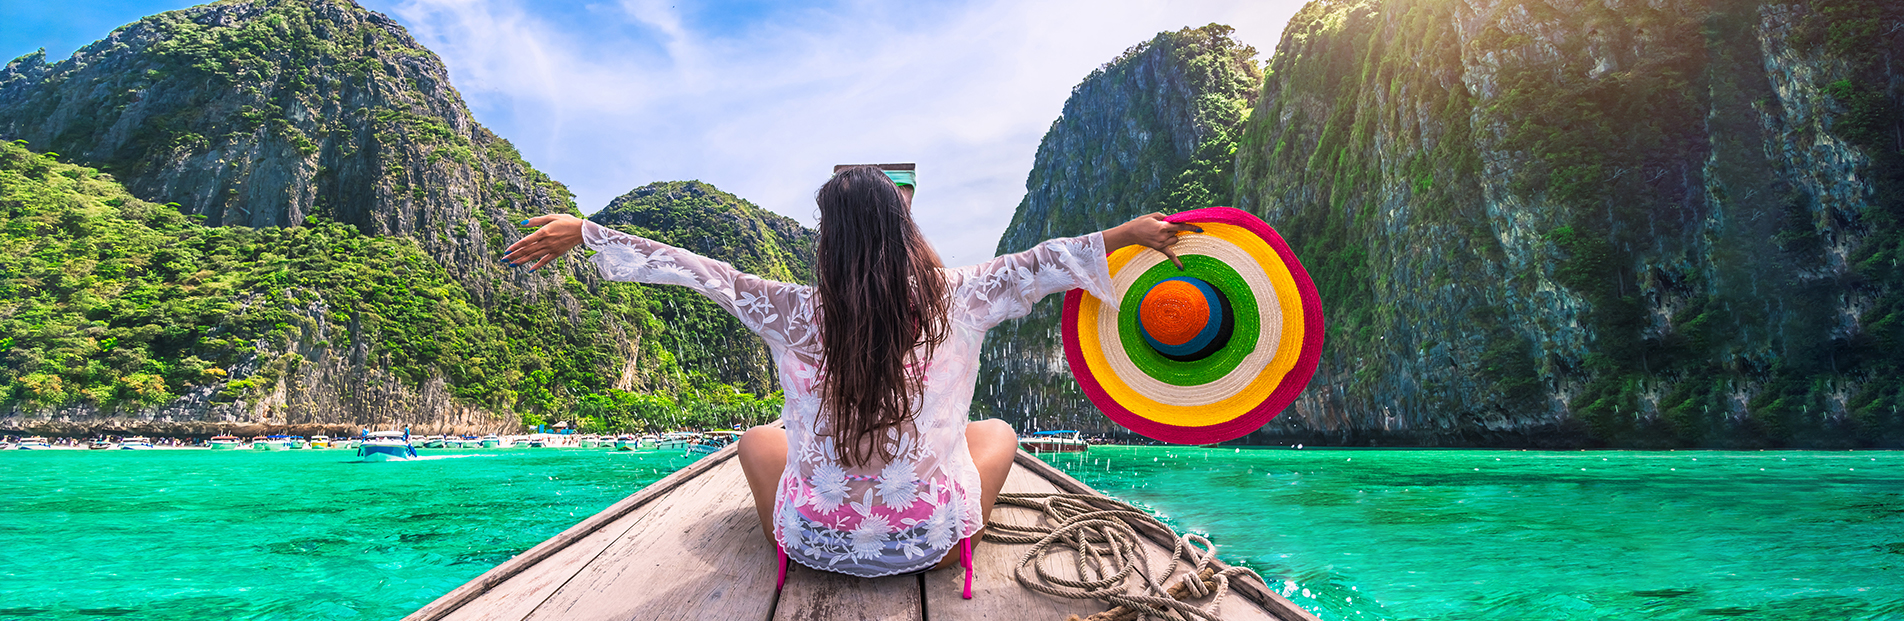 Happy tourist on a long tail boat in Phuket Thailand